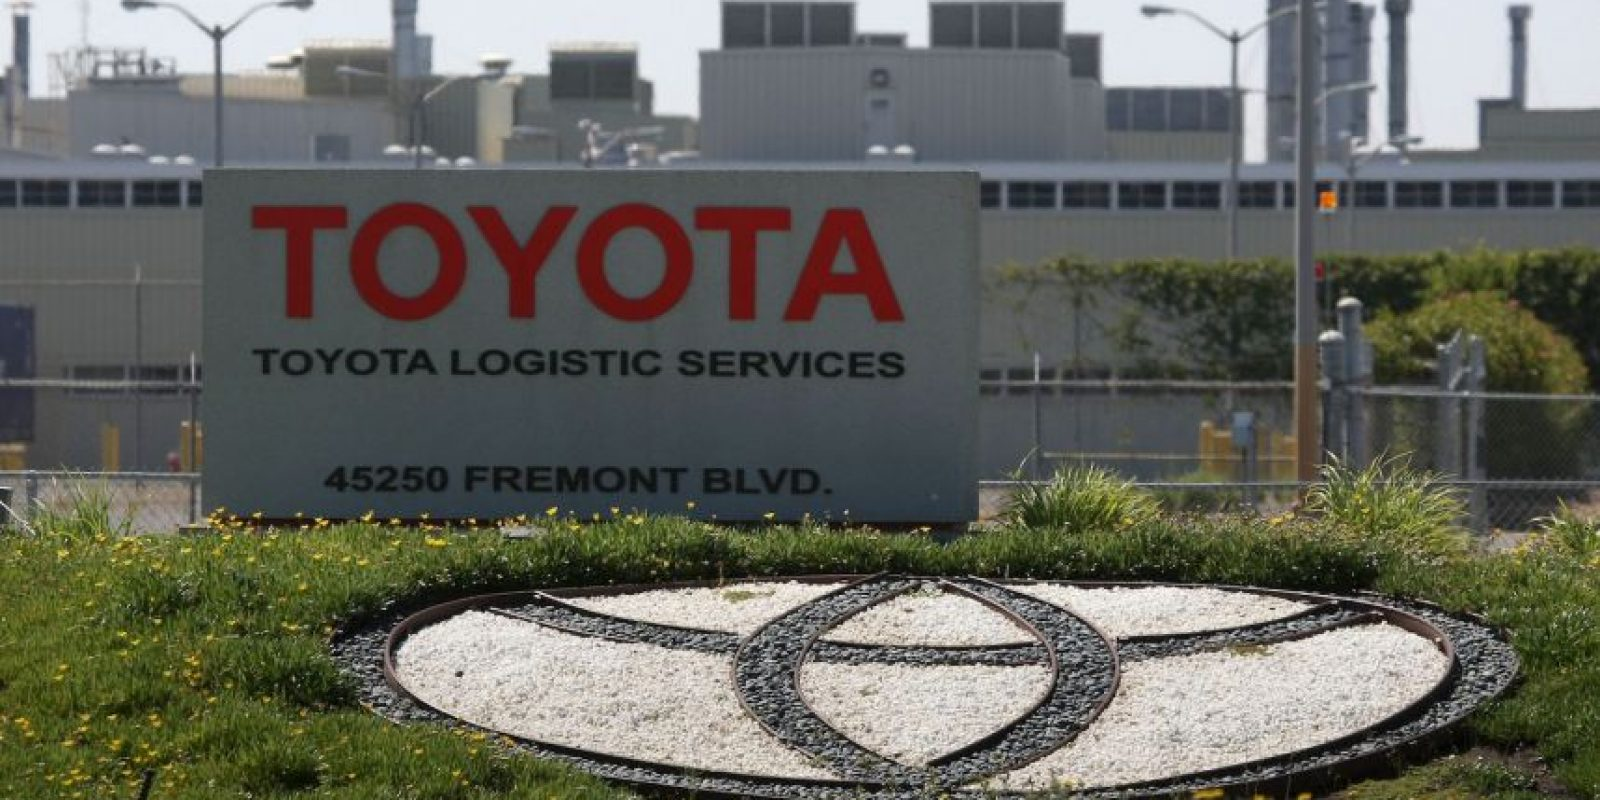 1. Toyota Foto: Getty Images